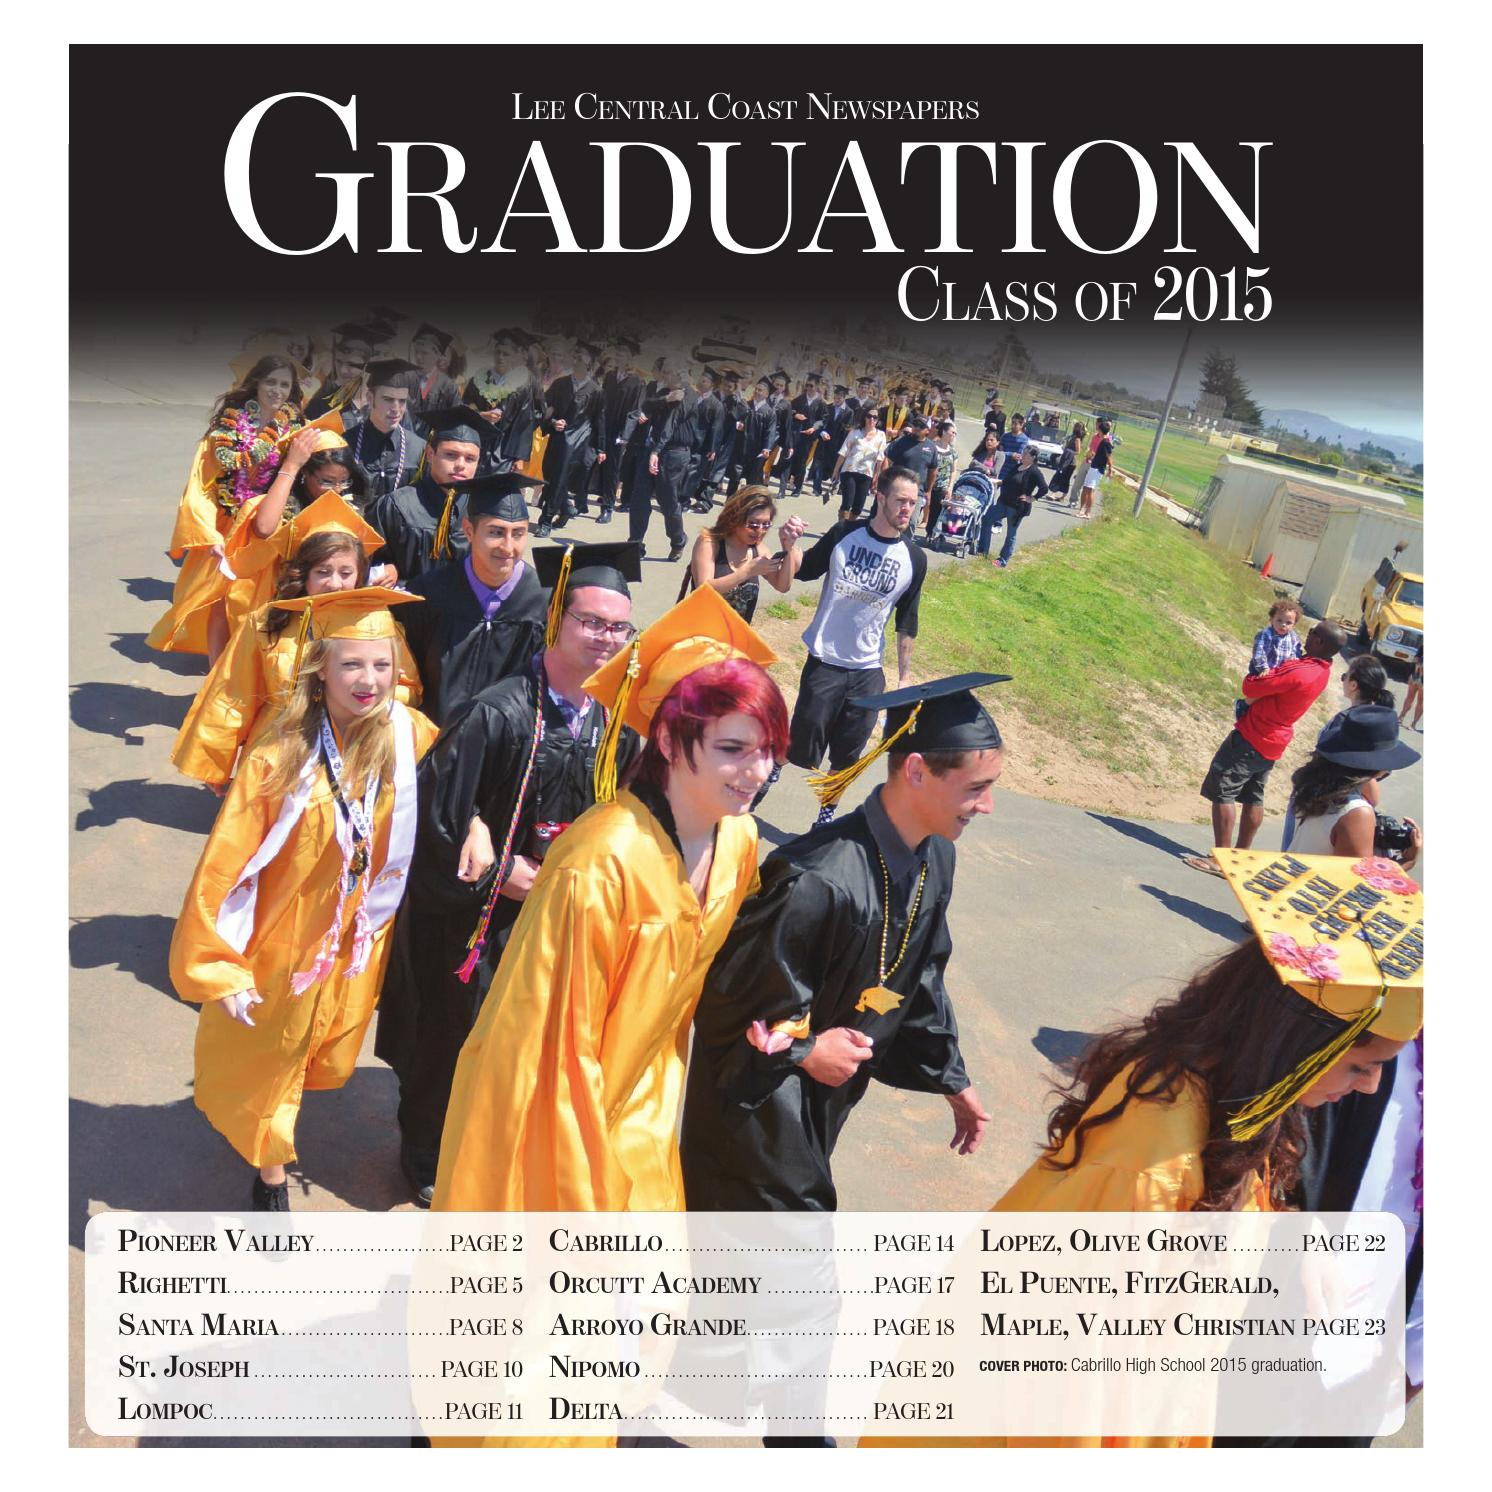 Graduation Class Of 2015 By Lee Central Coast Newspapers